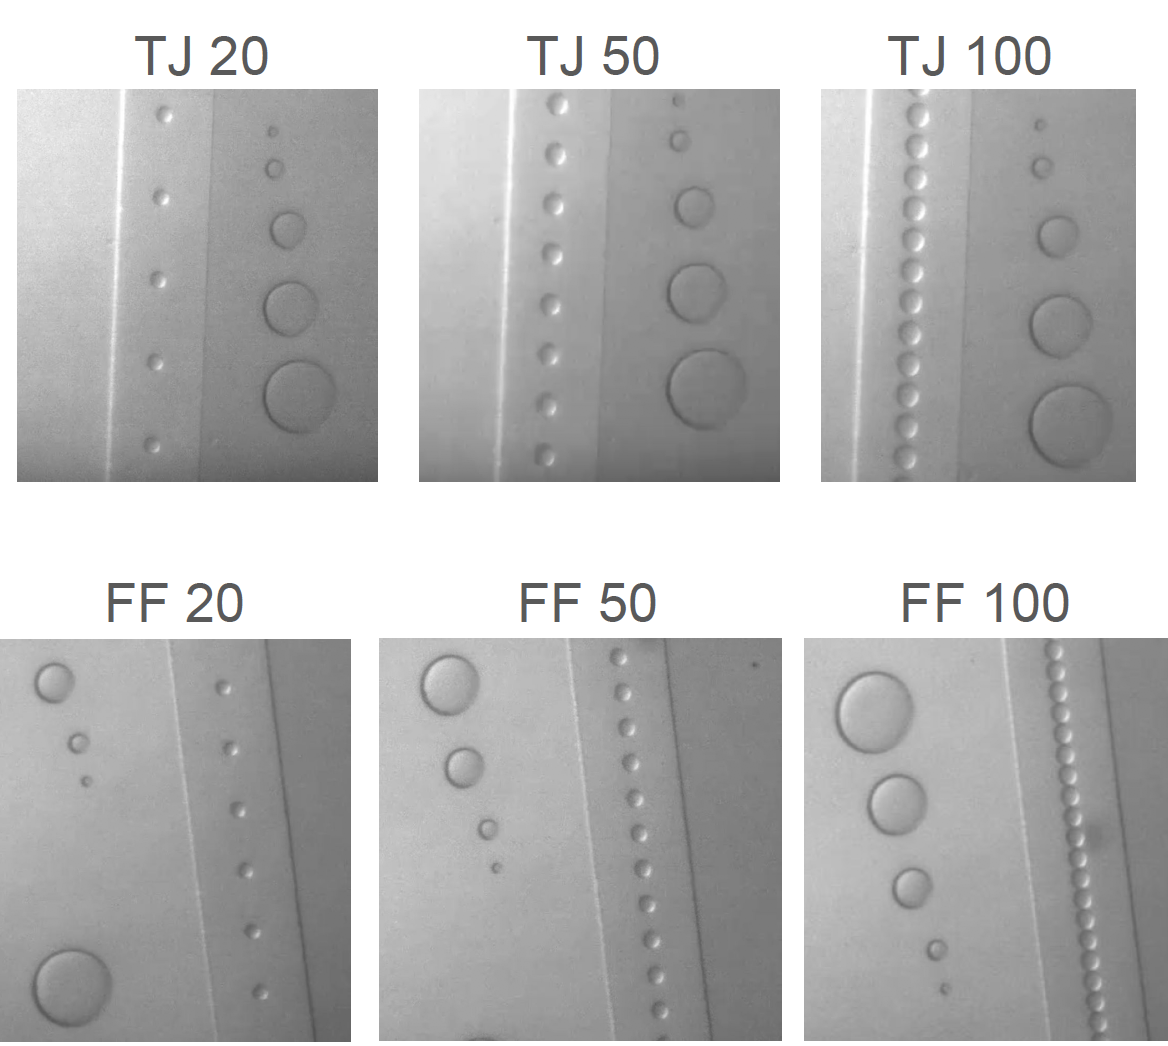 Figure 2.  Droplets produced via T-junction (top) and flow focusing (bottom) devices at different flow rates.